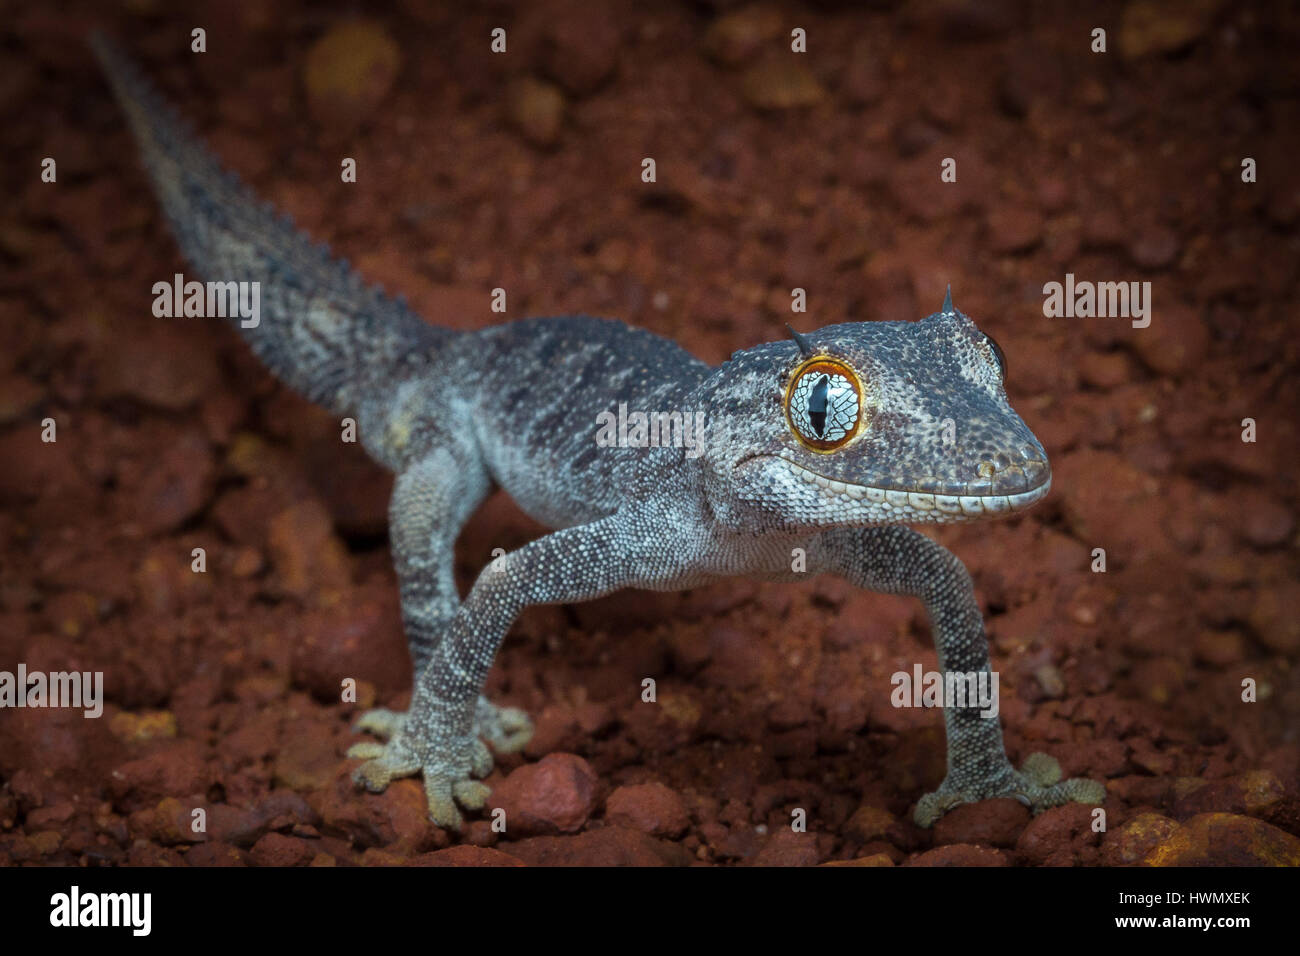 Northern Spiny-tailed Gecko (Strophurus ciliaris) - Stock Image